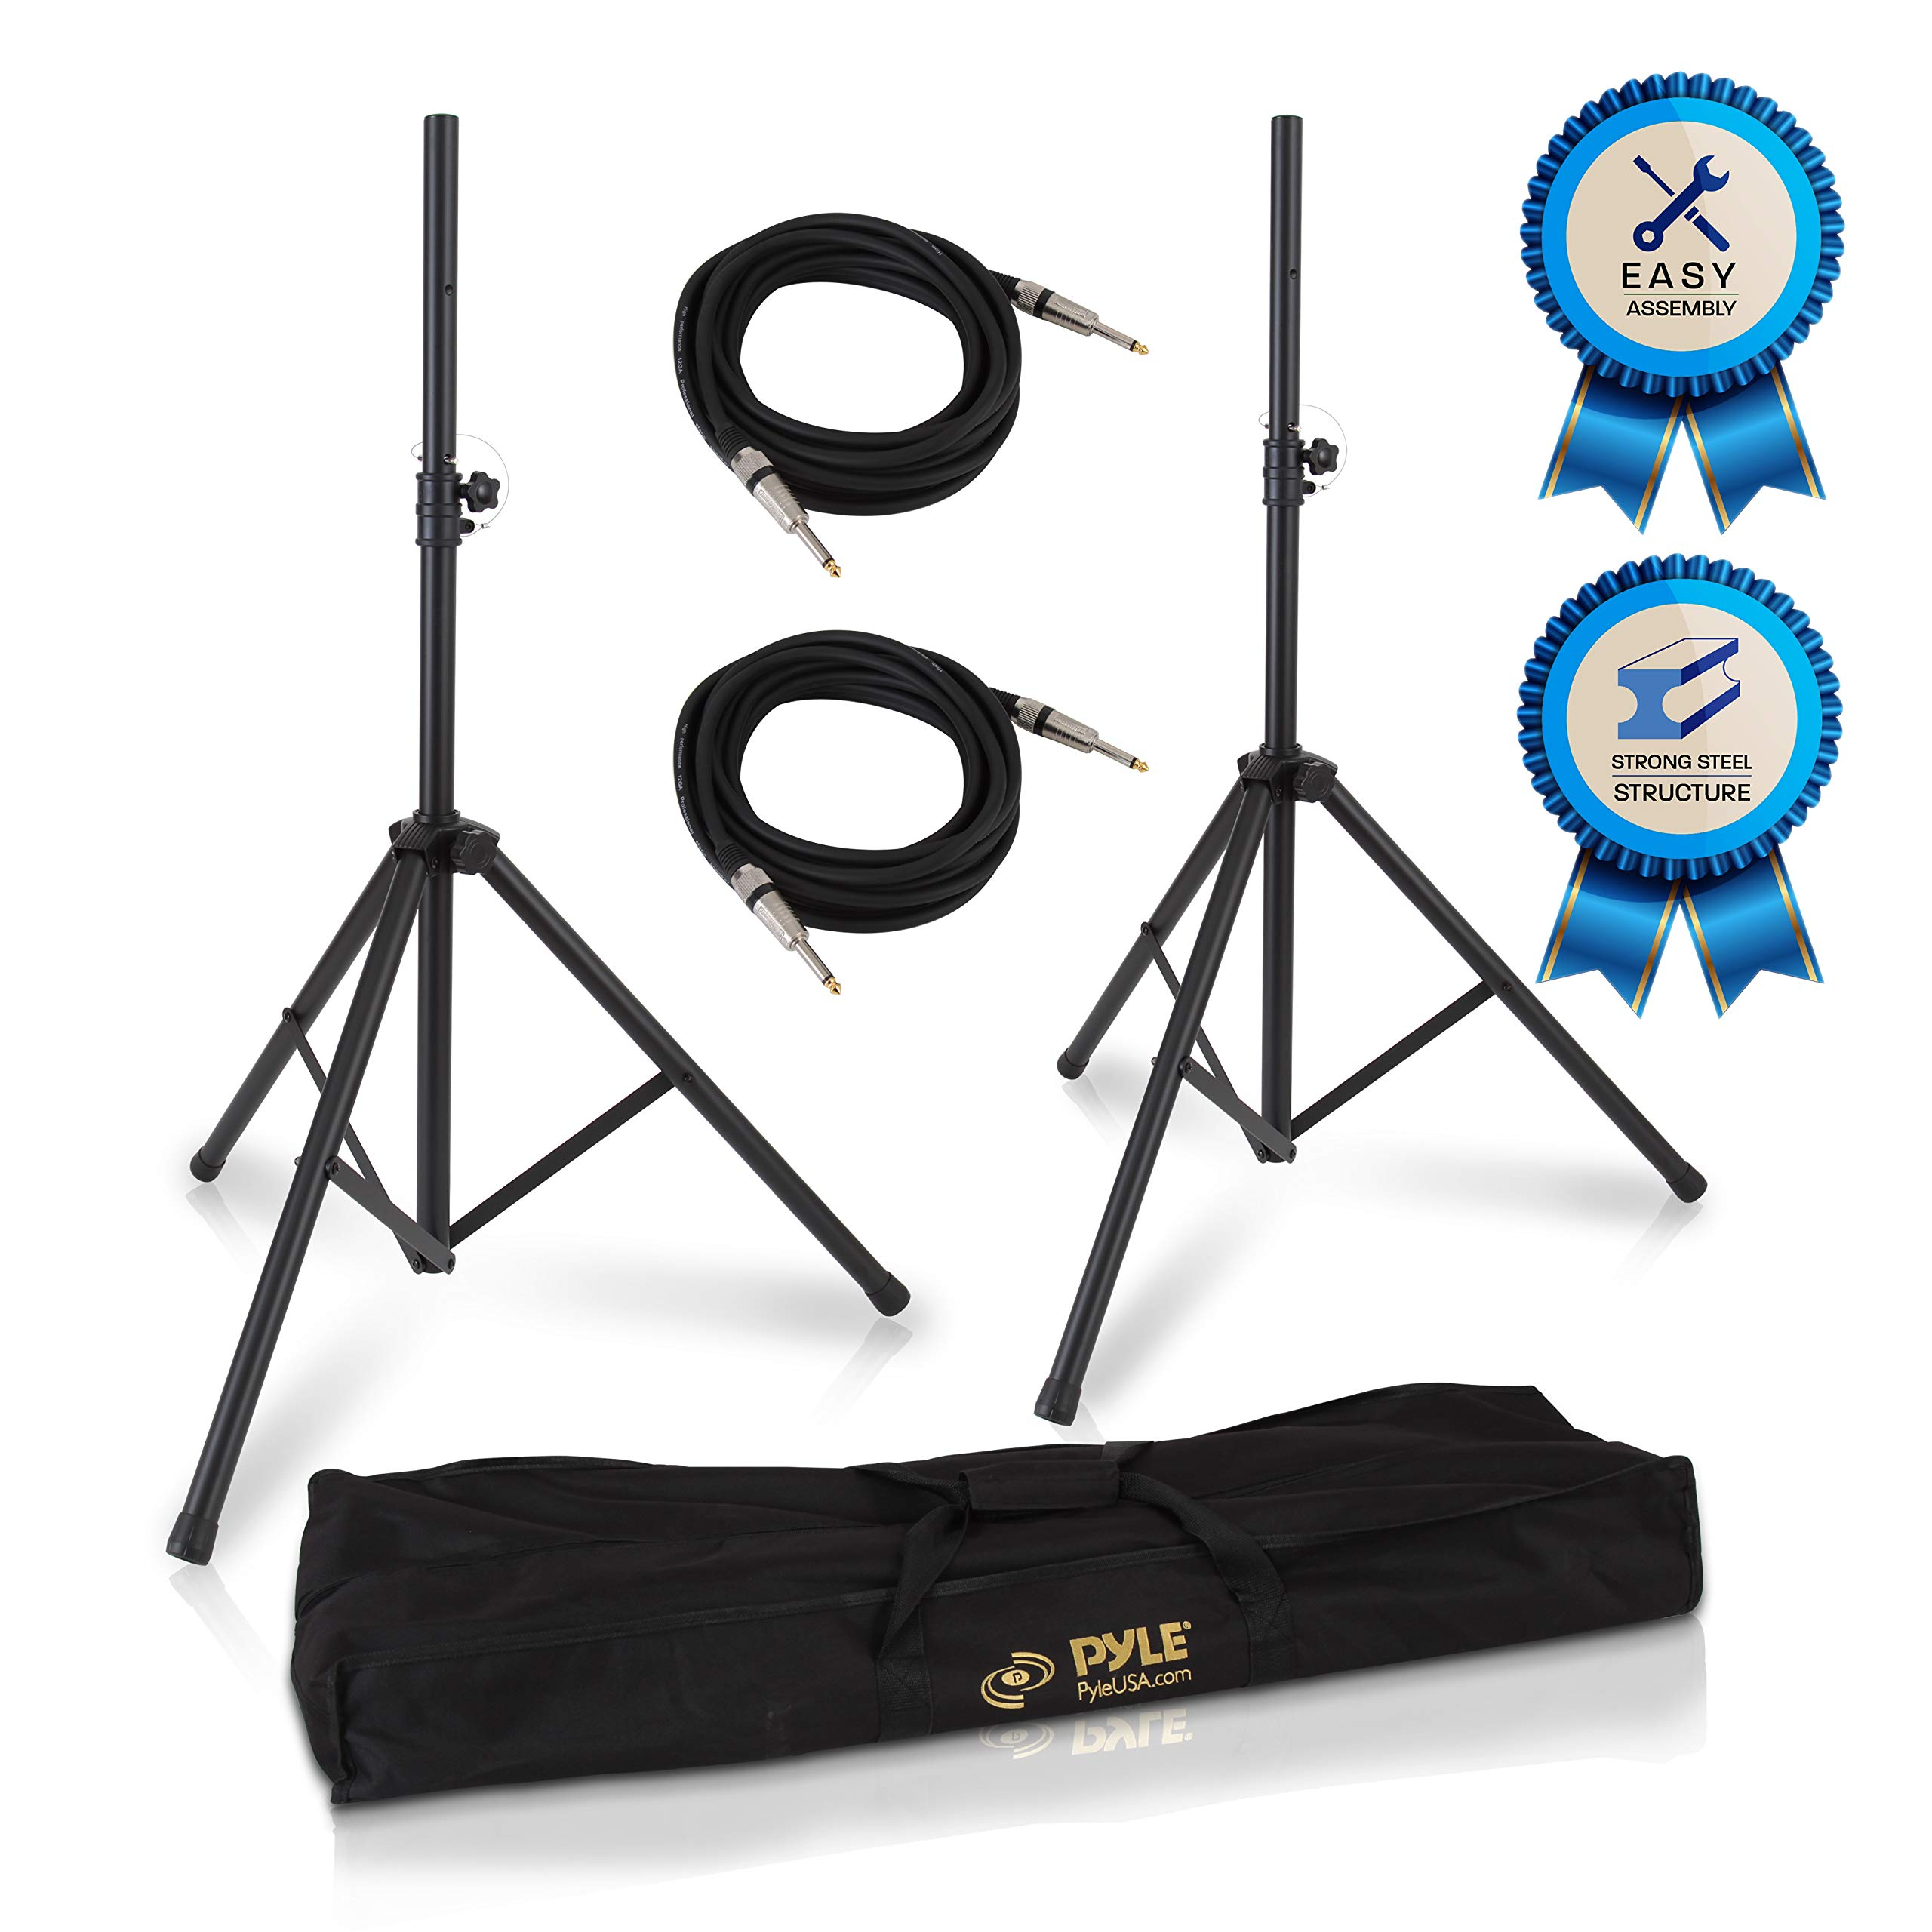 Pyle Stage & Studio DJ Speaker Stand Kit - Pro Audio PA Loudspeaker Stands & Audio Cable, Storage Bag, 1/4'' -inch Connector (PMDK102) by Pyle